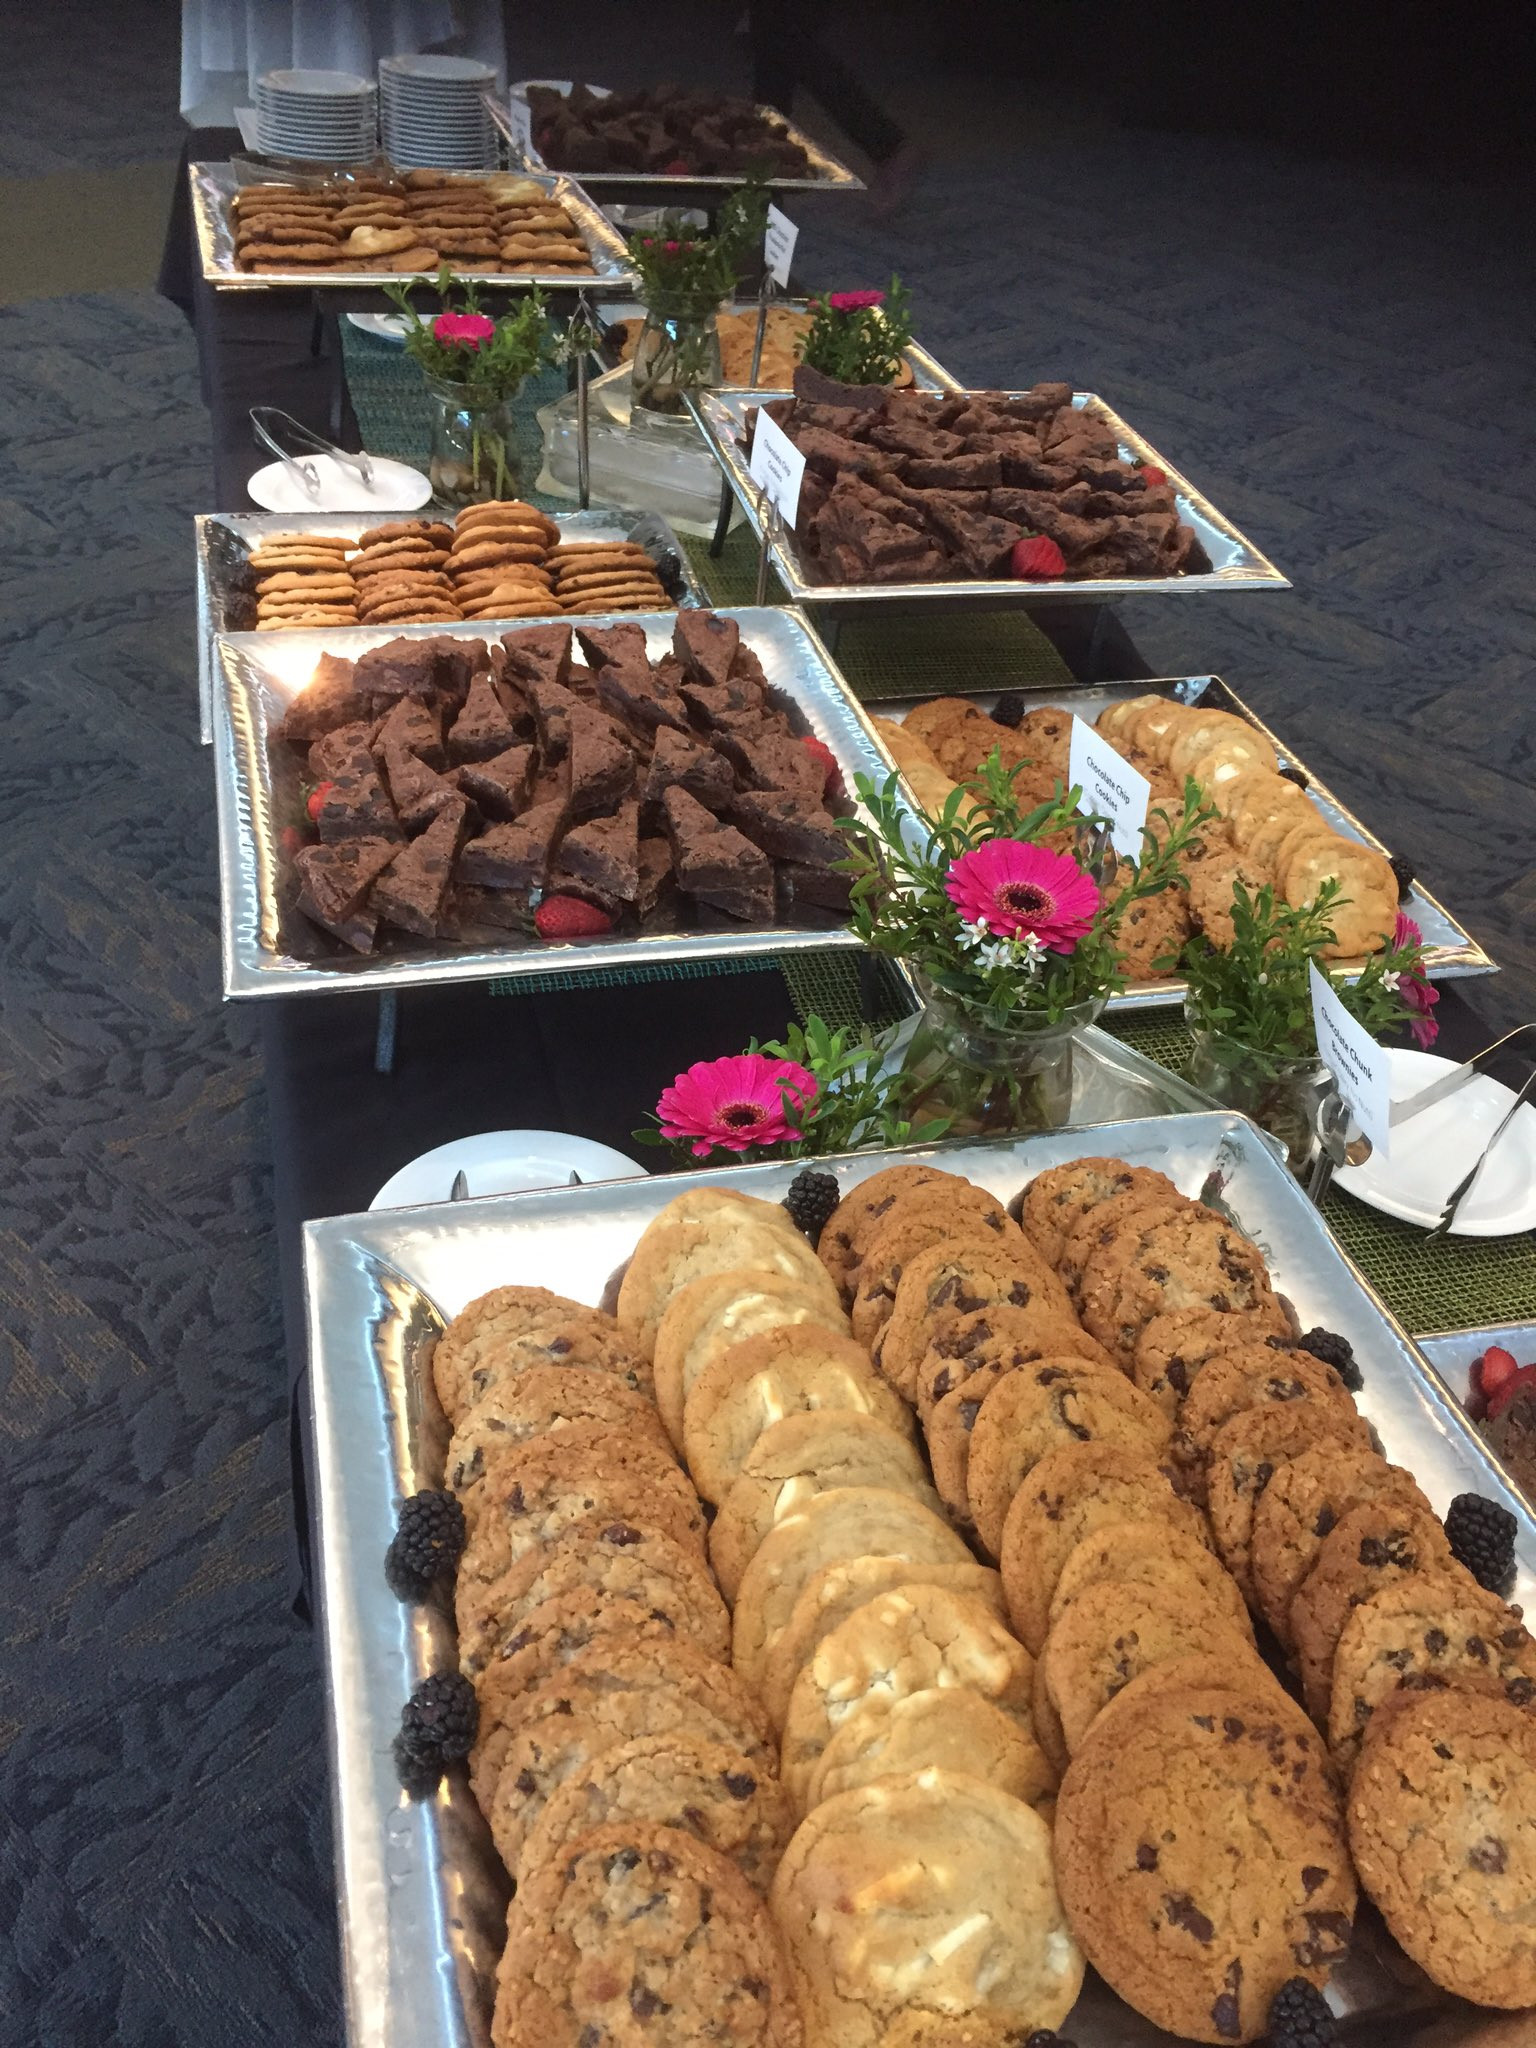 Coffee break at #isrii8. I need a behavior change intervention to resist. Or maybe the organizers do https://t.co/6yjQdtIq2k